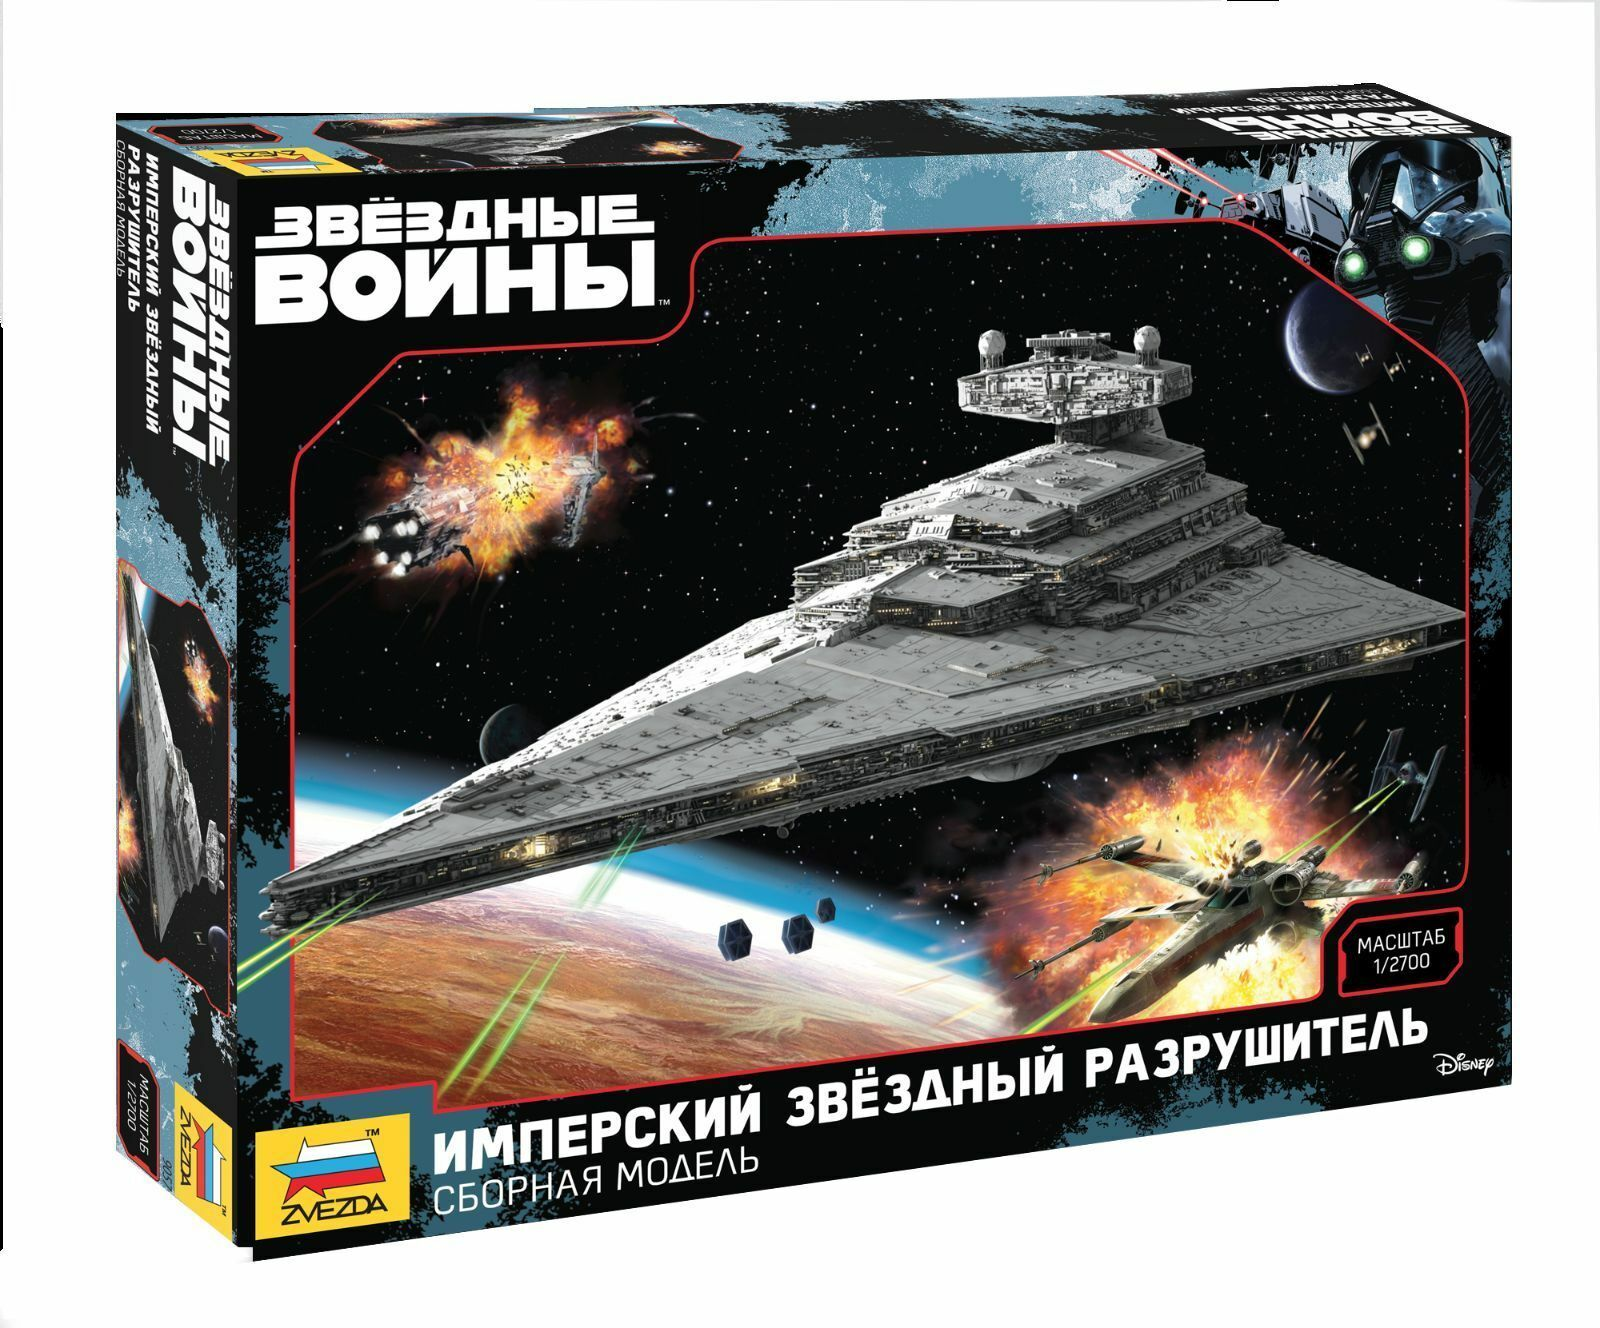 Imperial Star Destroyer Star Wars Model Kit scale 1 2700 ZVEZDA 9057 in Box